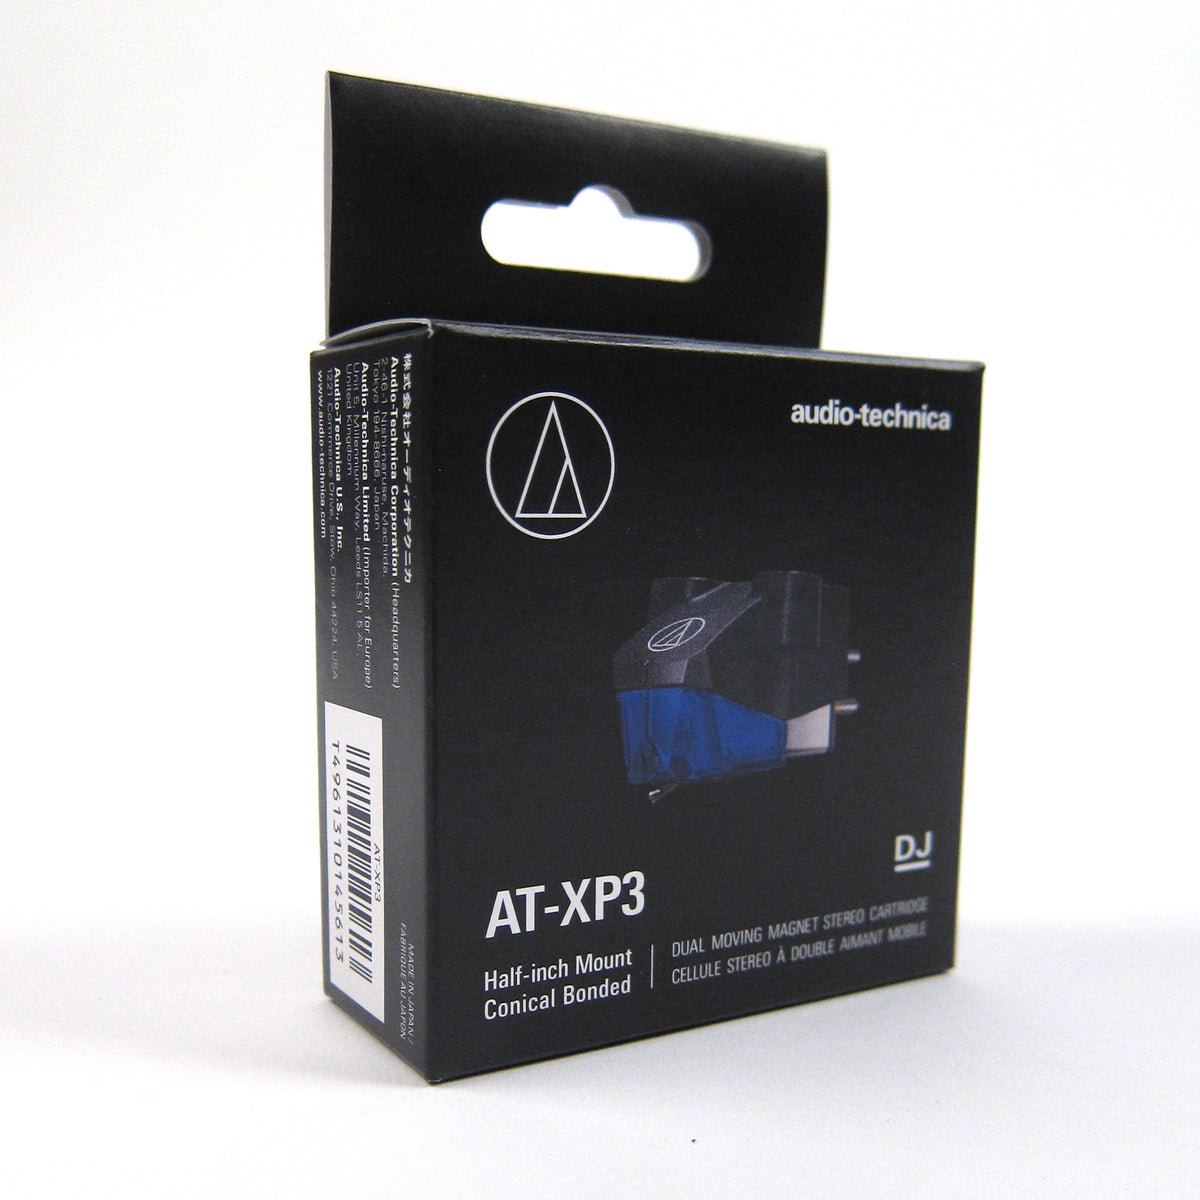 Audio-Technica: AT-XP3 DJ Cartridge